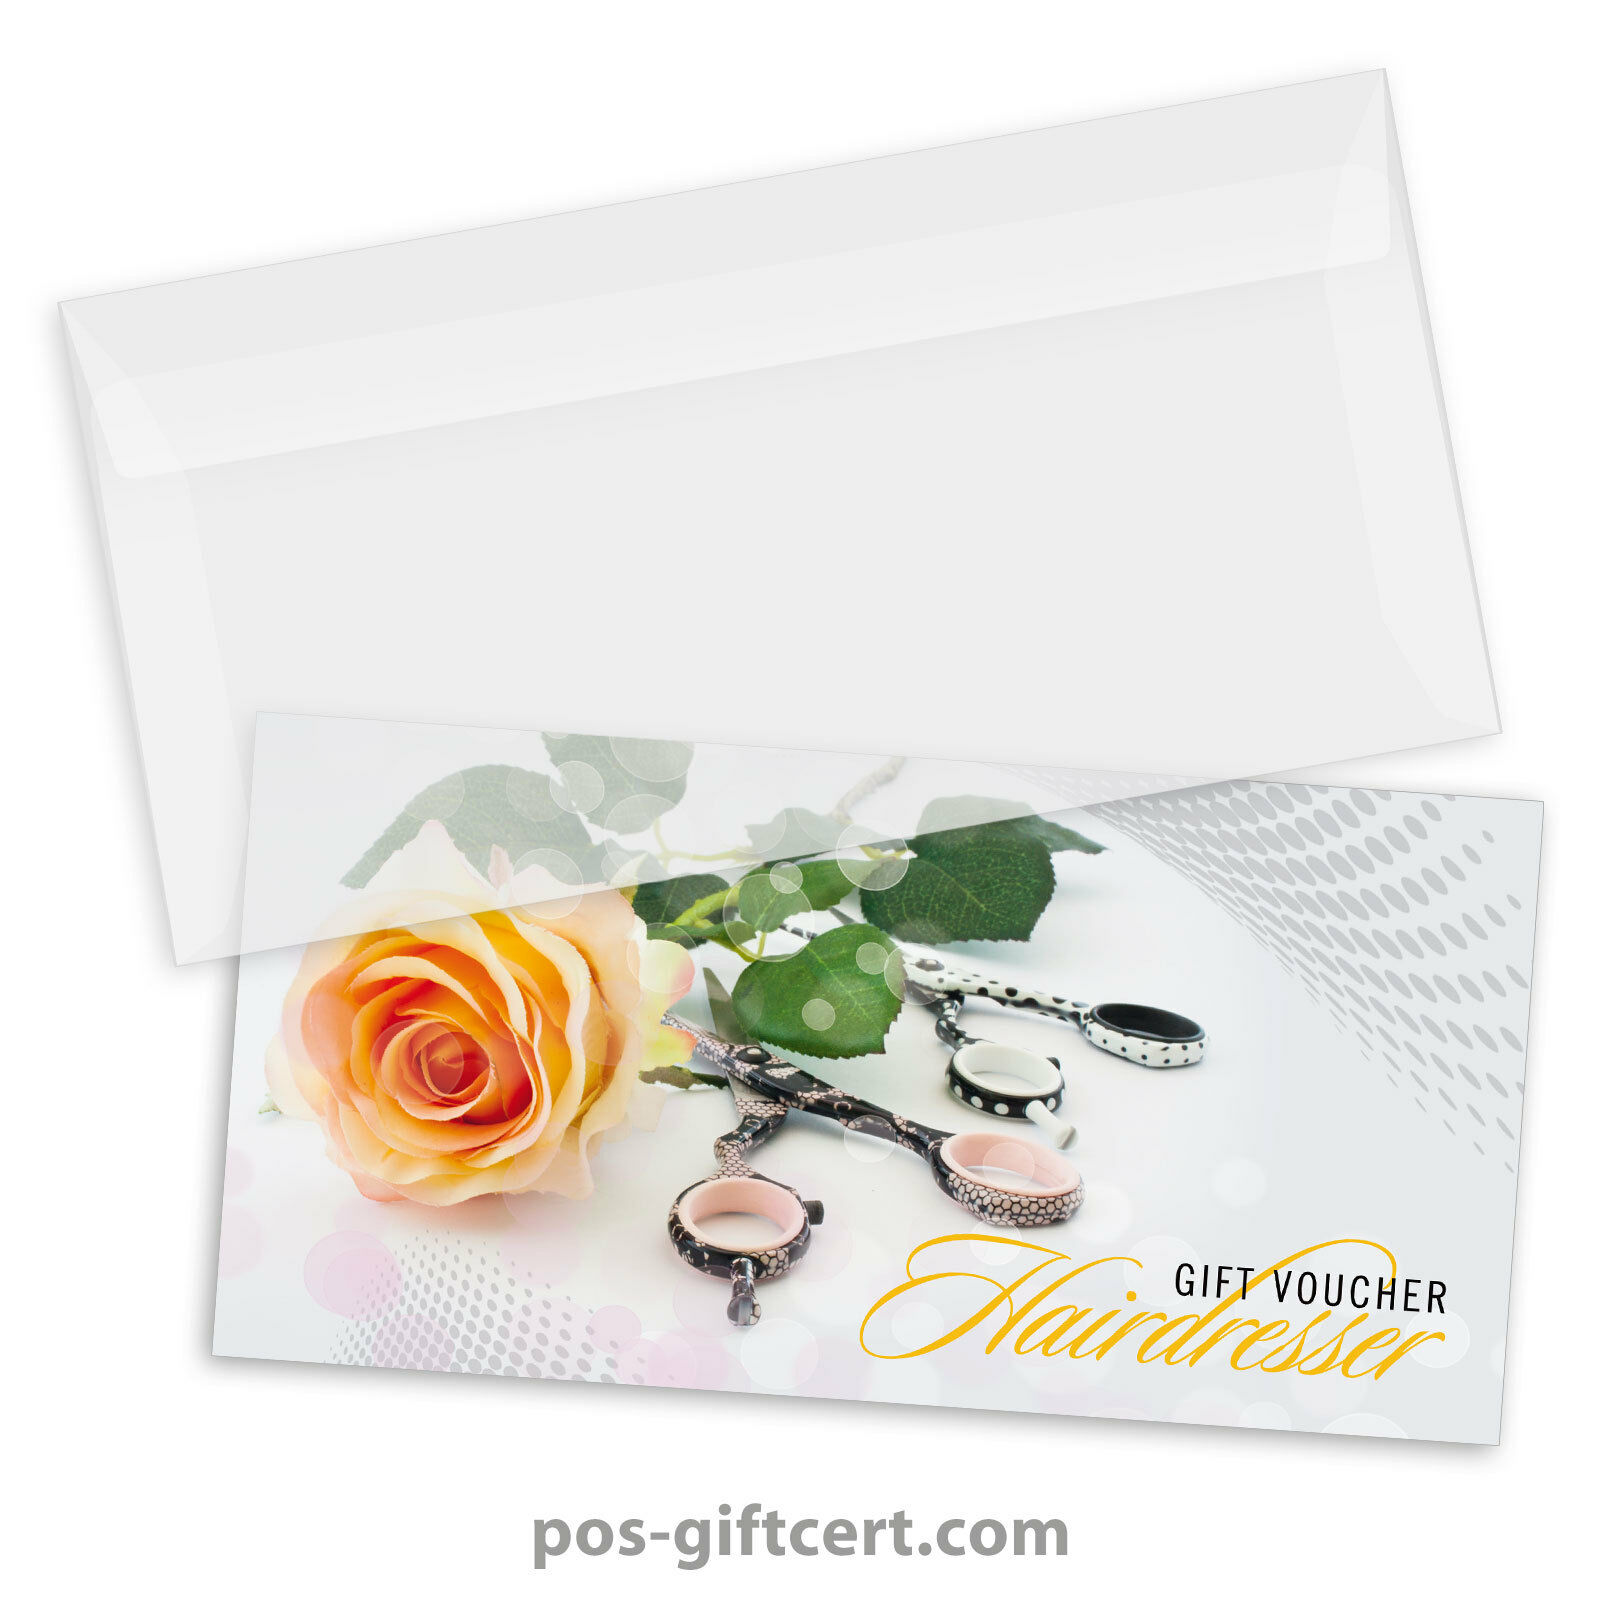 Gift vouchers + envelopes for hair salons, hairdressers, hairstylists K9278GB